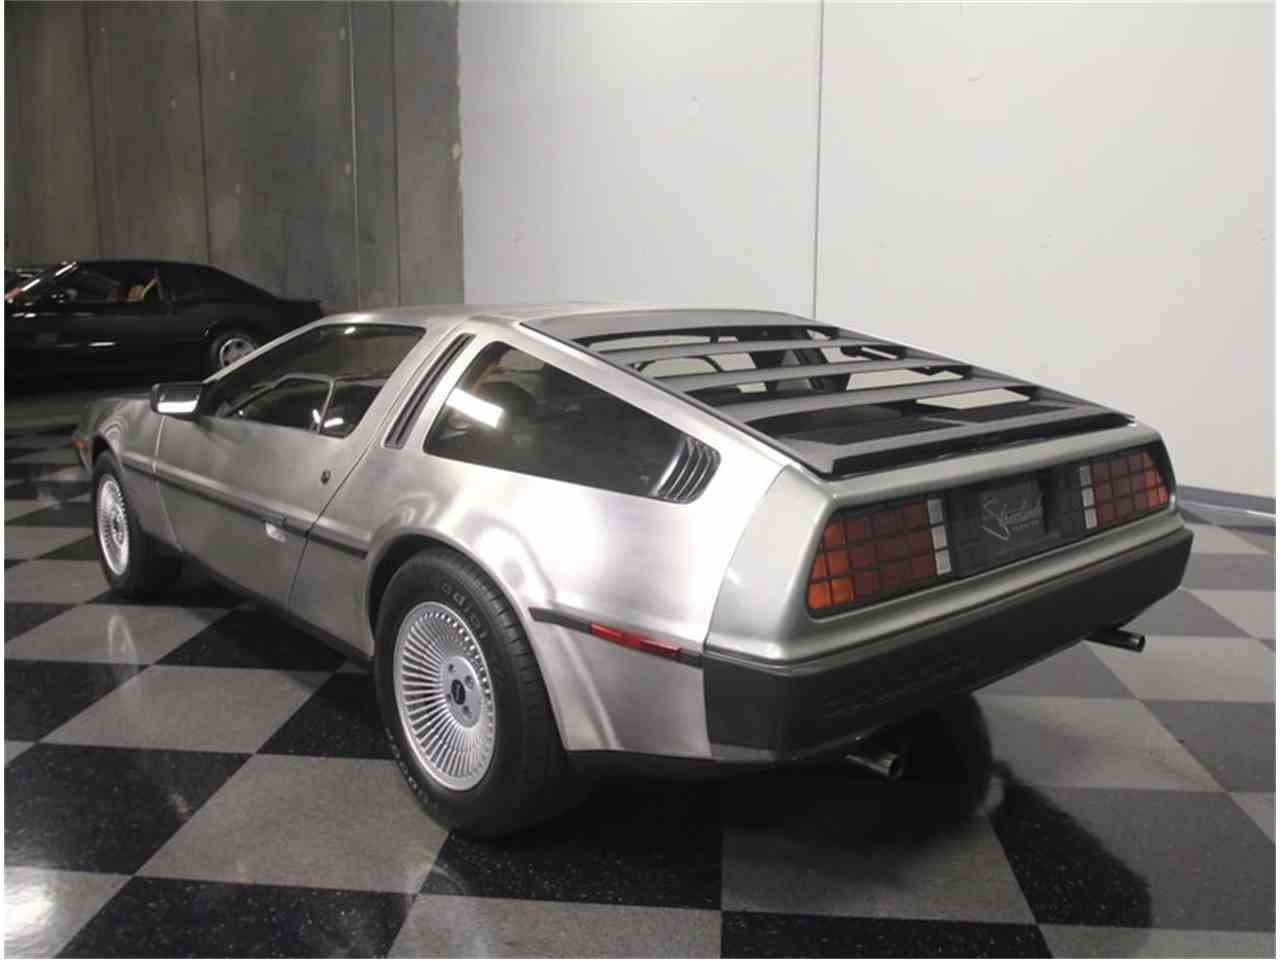 Large Picture of '81 DMC-12 - $49,995.00 Offered by Streetside Classics - Atlanta - MGXM